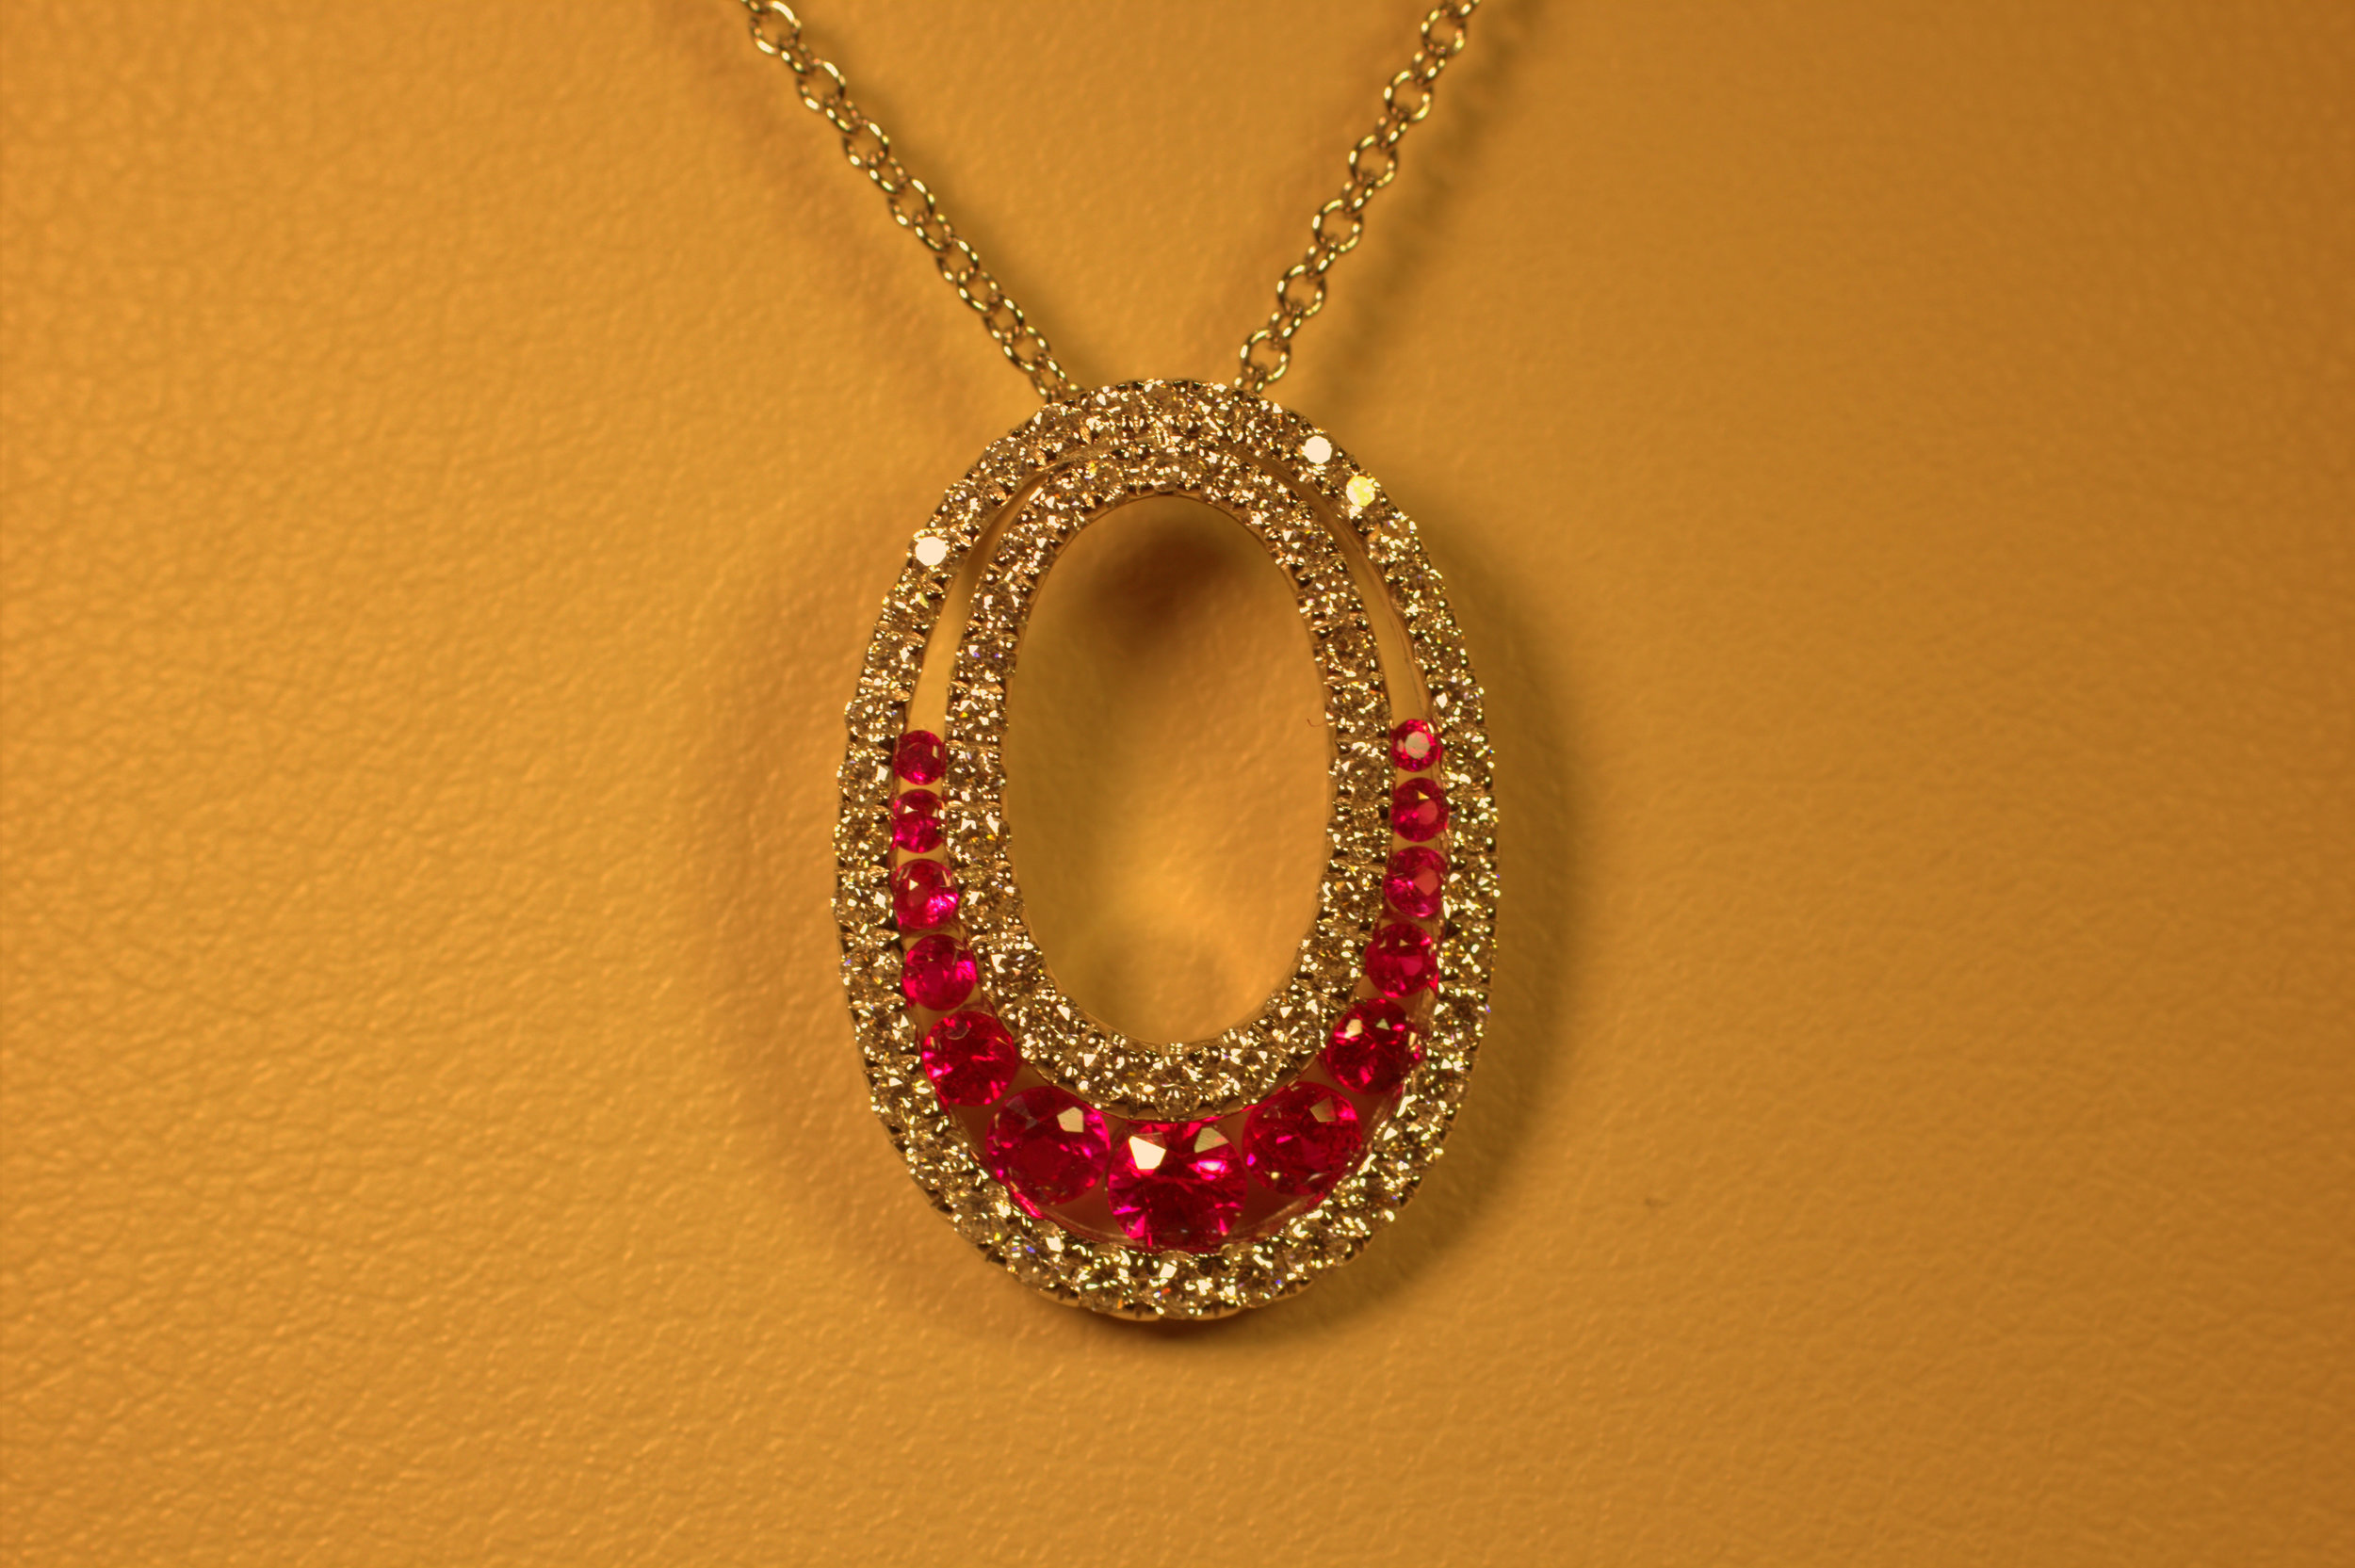 Beatuiful pigeons blood red ruby pendant in oval circle of diamonds set betweeen two rows of ideal cut brilliant bright diamonds rubies are july birthstone chic modern available at marlen jewelers in rocky river minutes from cleveland.jpg